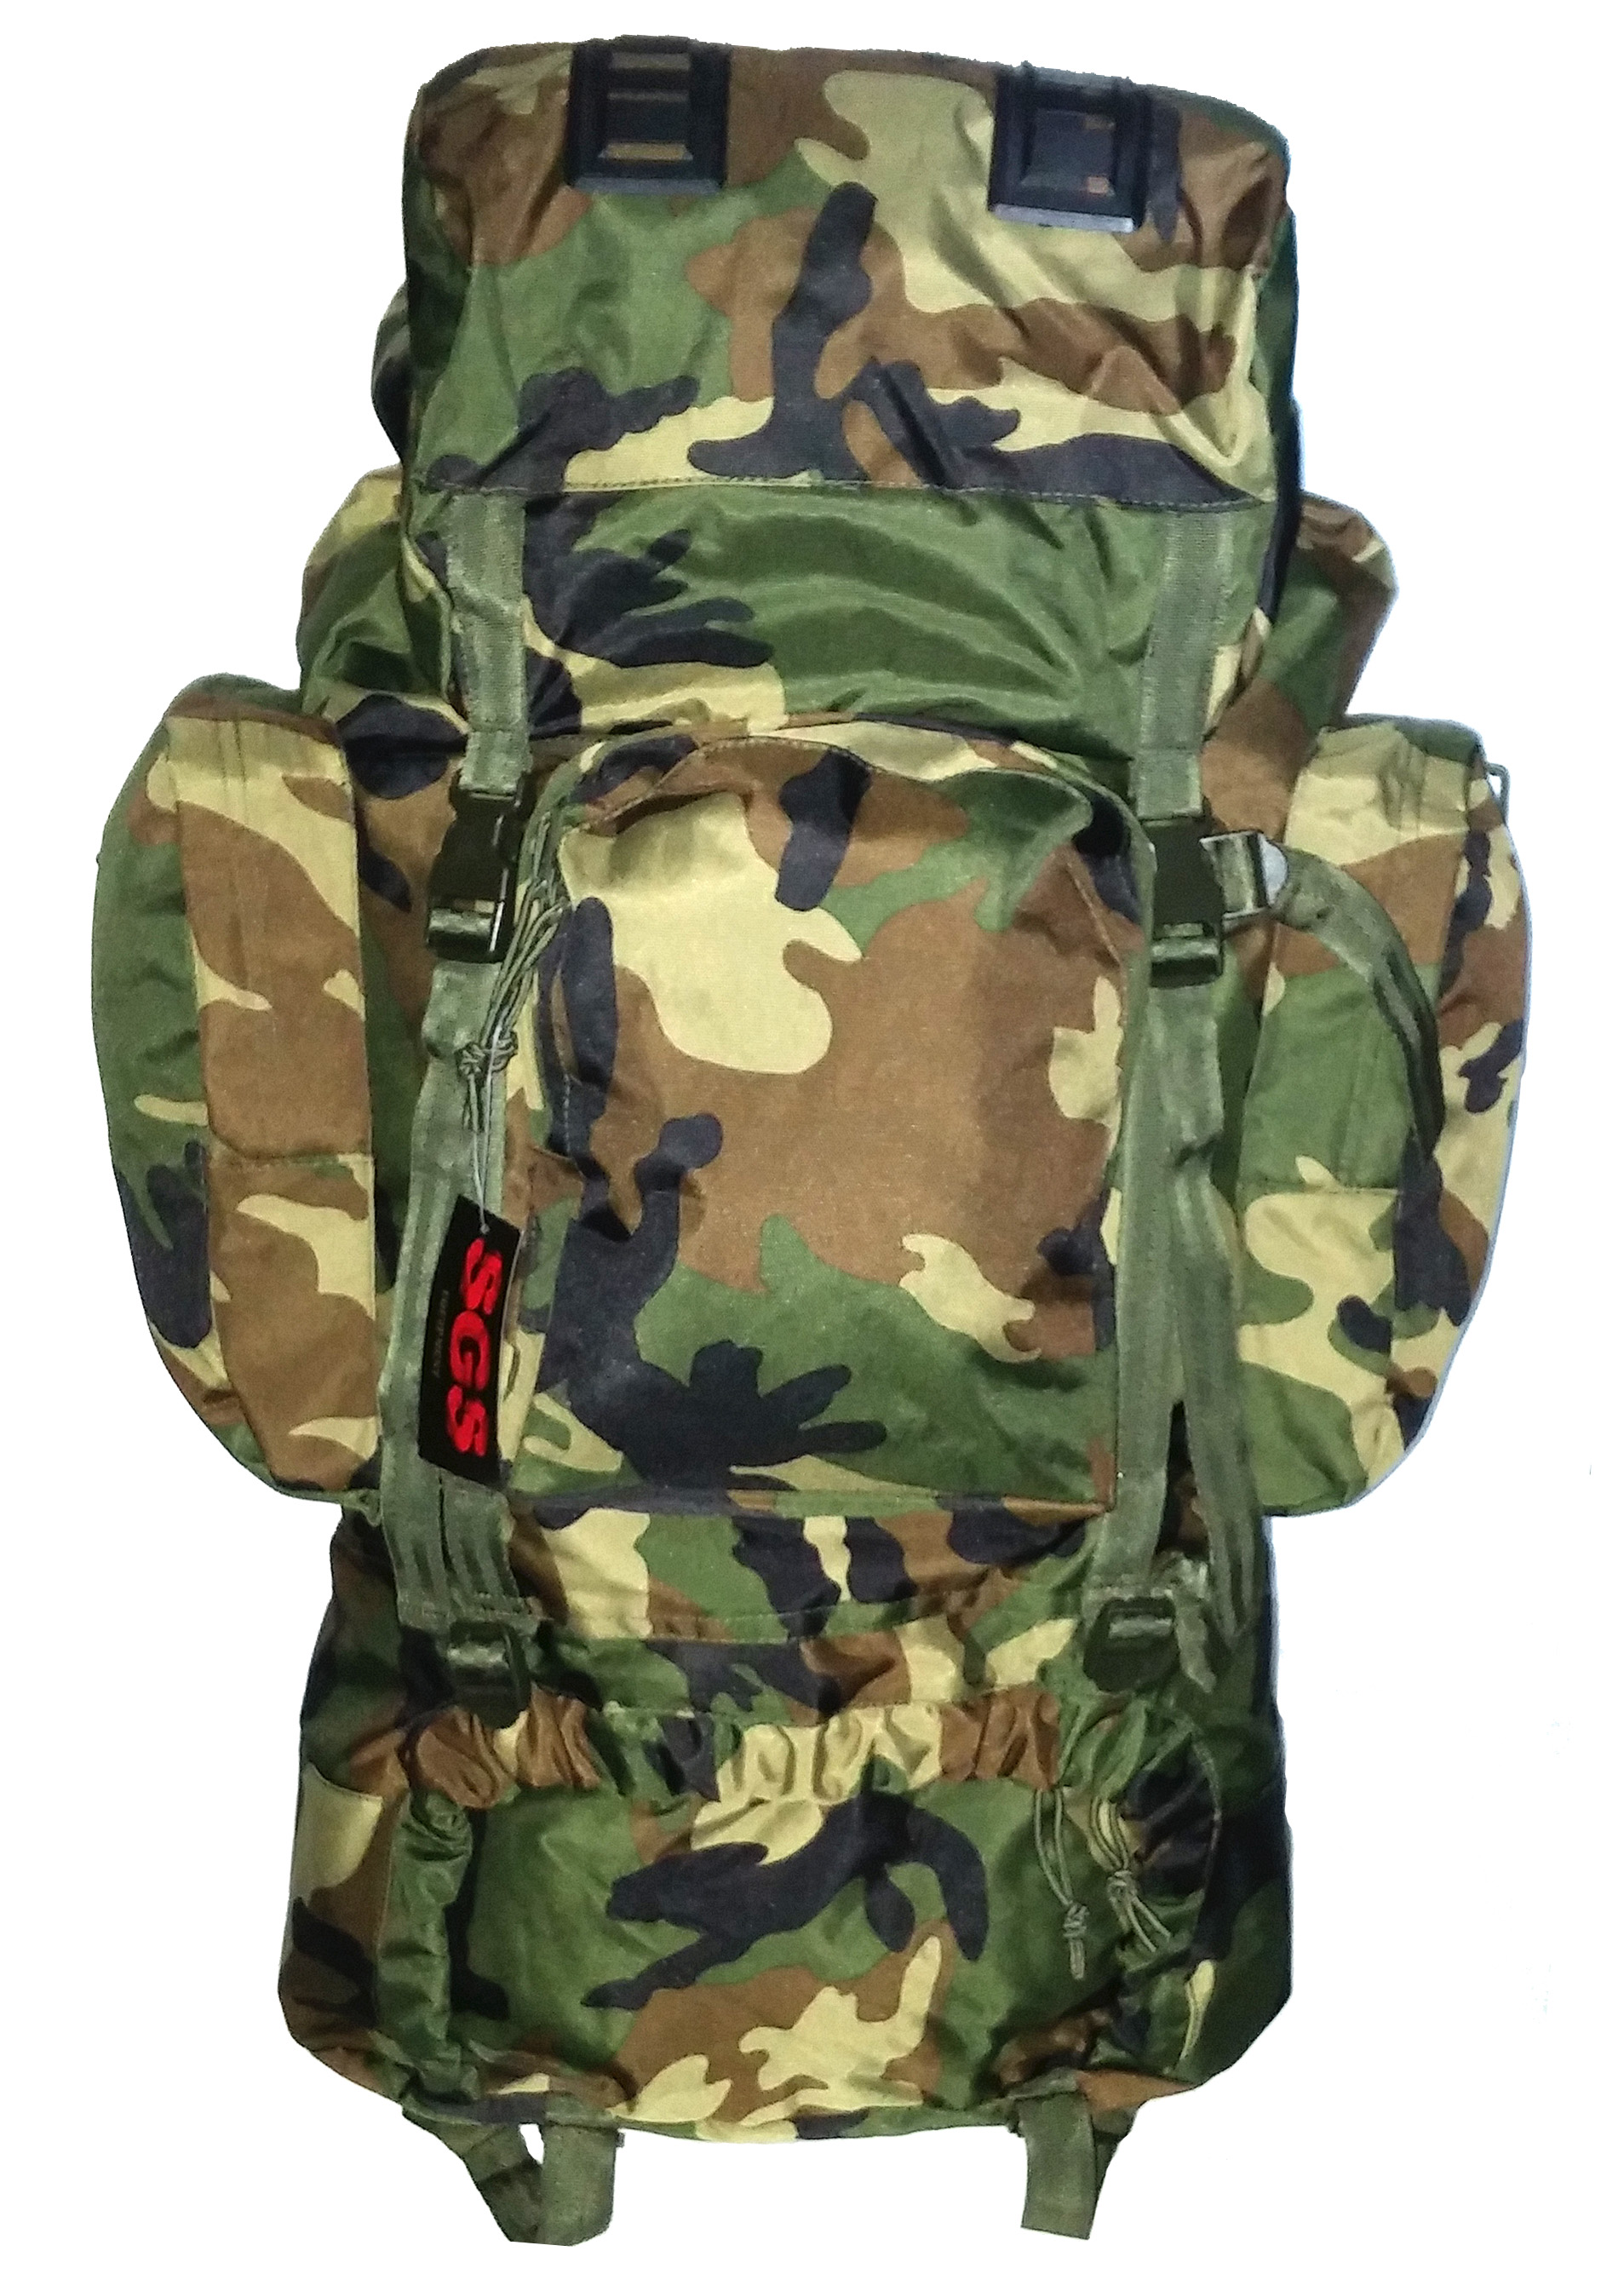 Woodland combat rack sack